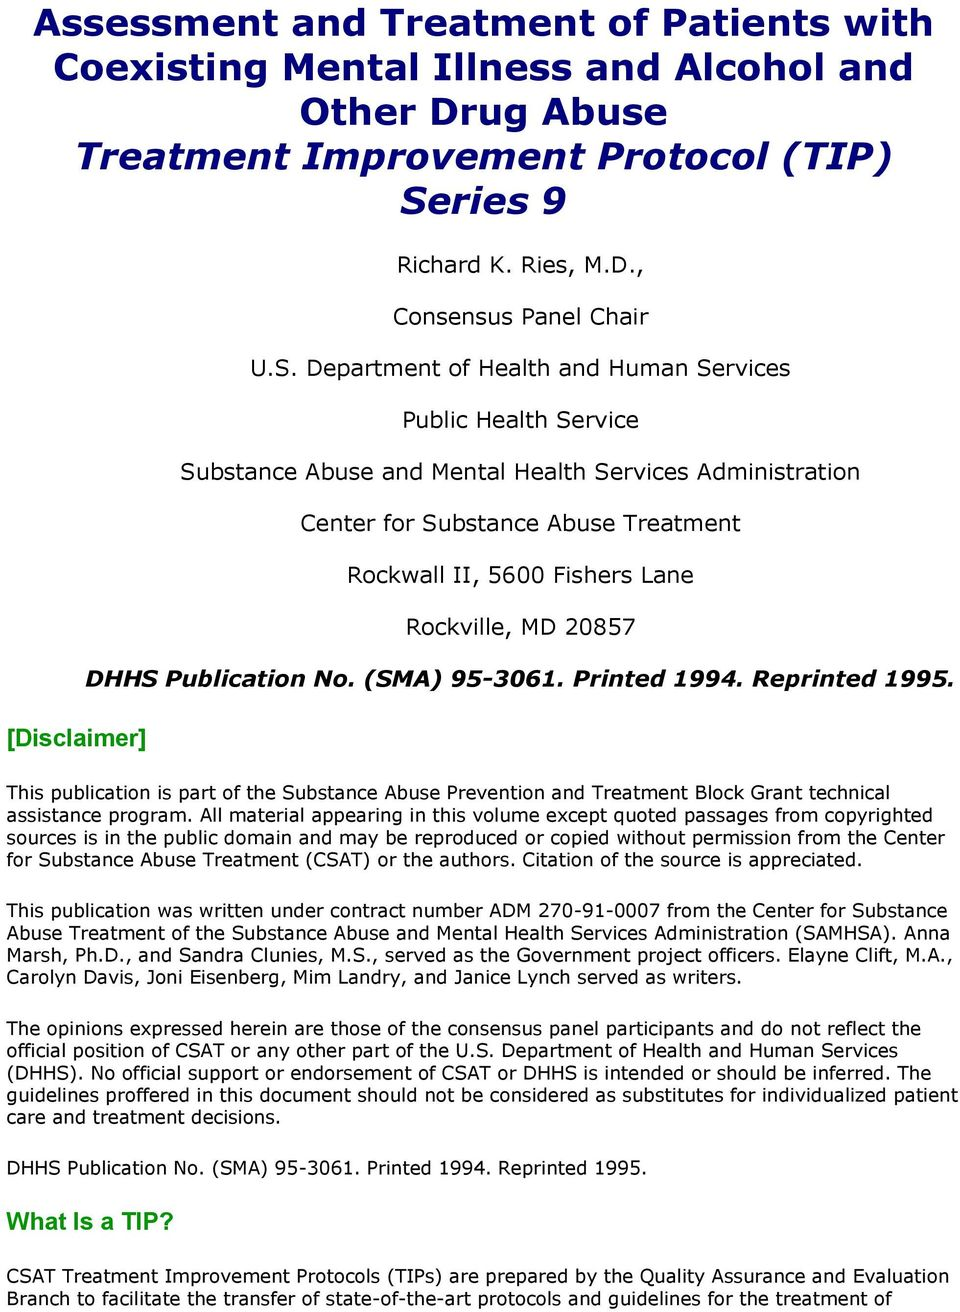 Rockville, MD 20857 DHHS Publication No. (SMA) 95-3061. Printed 1994. Reprinted 1995. This publication is part of the Substance Abuse Prevention and Treatment Block Grant technical assistance program.